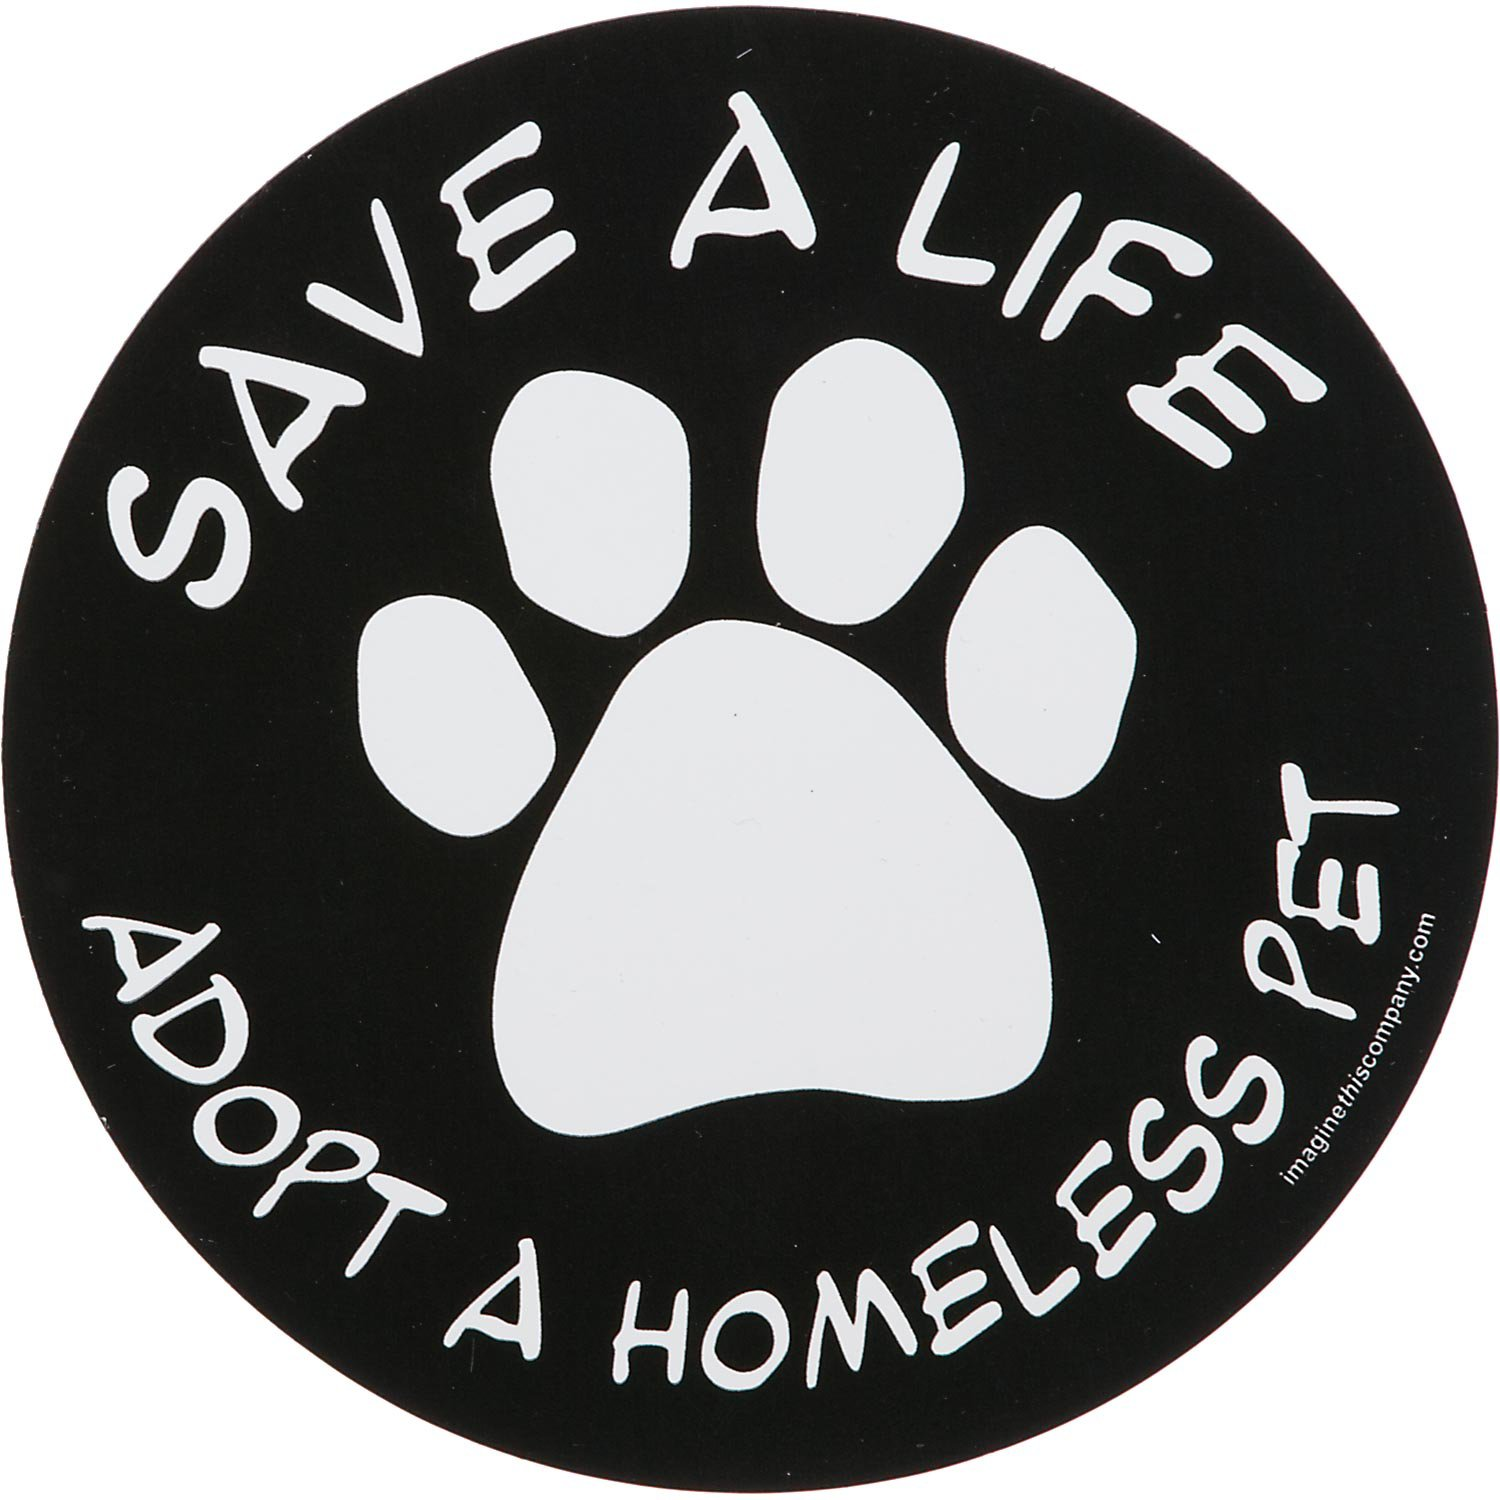 Car True Value >> Imagine This Save A Life Adopt A Homeless Pet Car Magnet | Petco